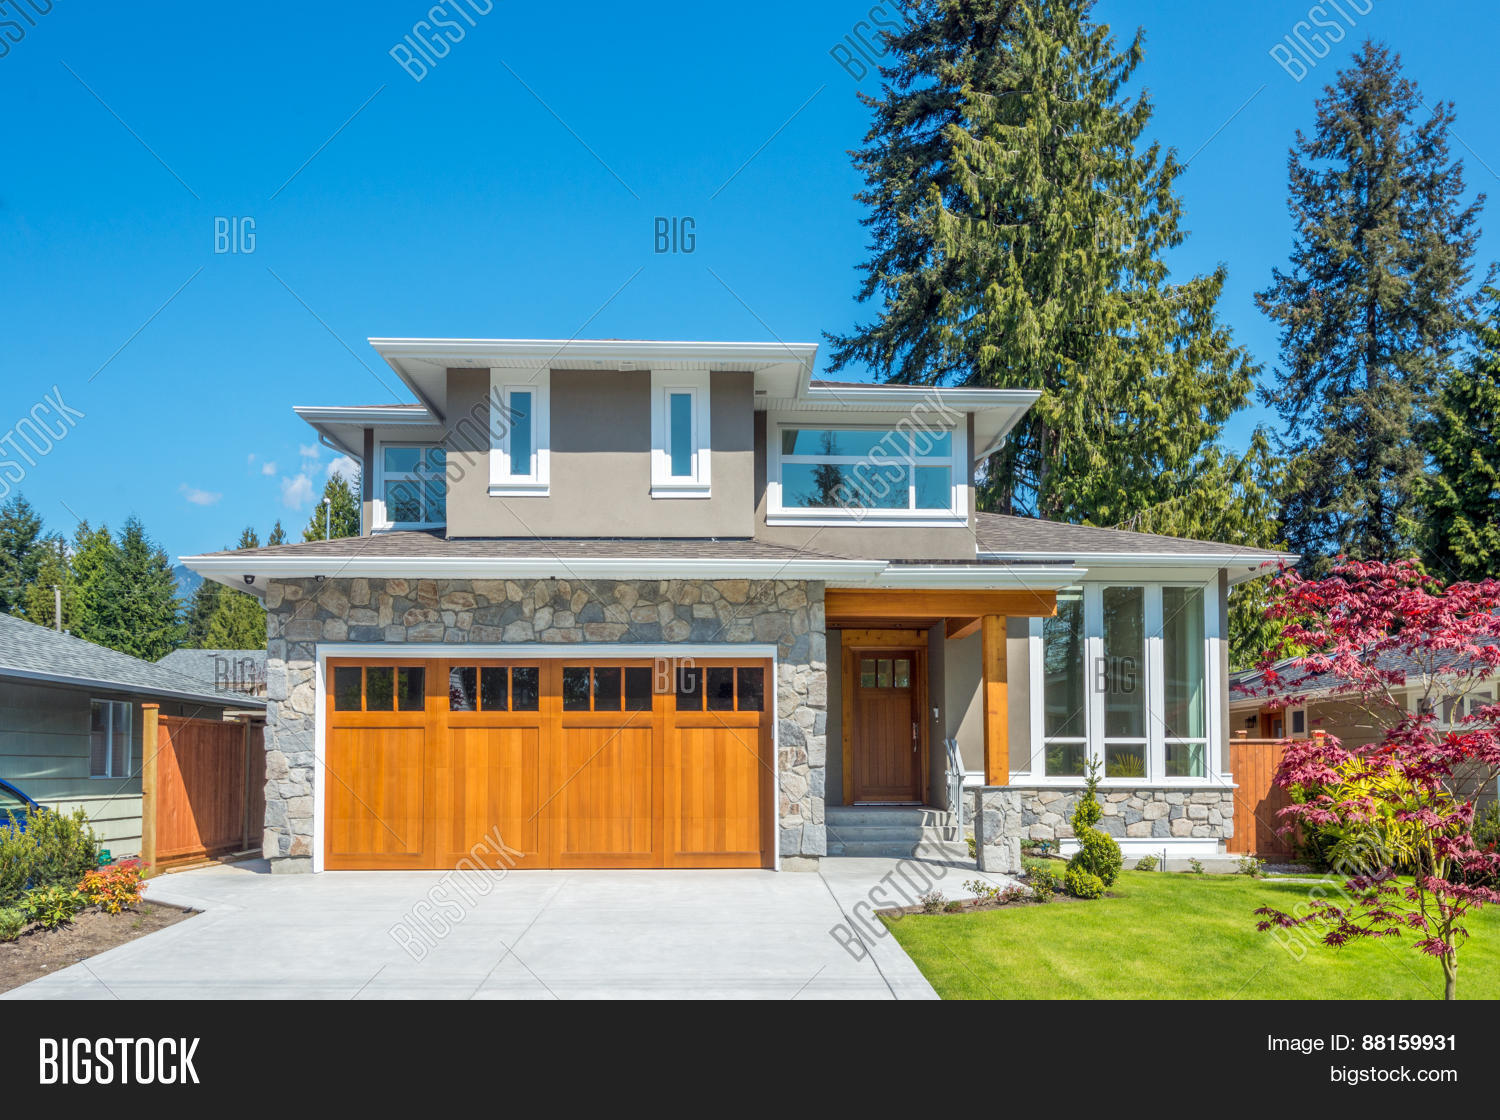 Kuva cozy house on sunny day home exterior bigstock for Home daylight